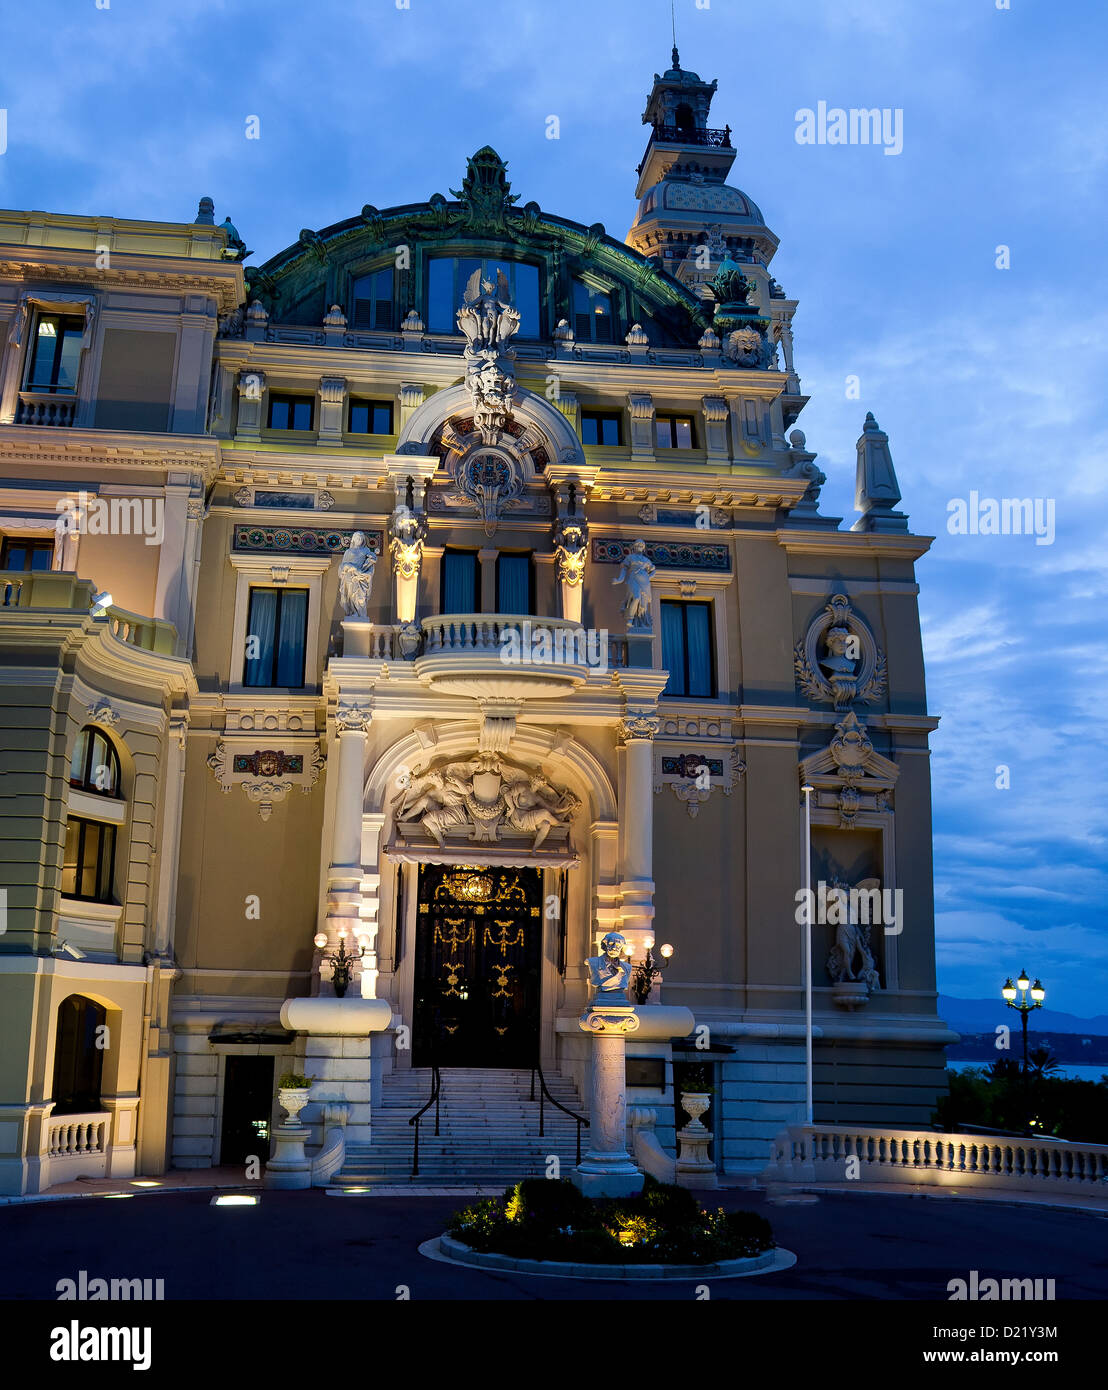 A beautiful building facade by night - Stock Image